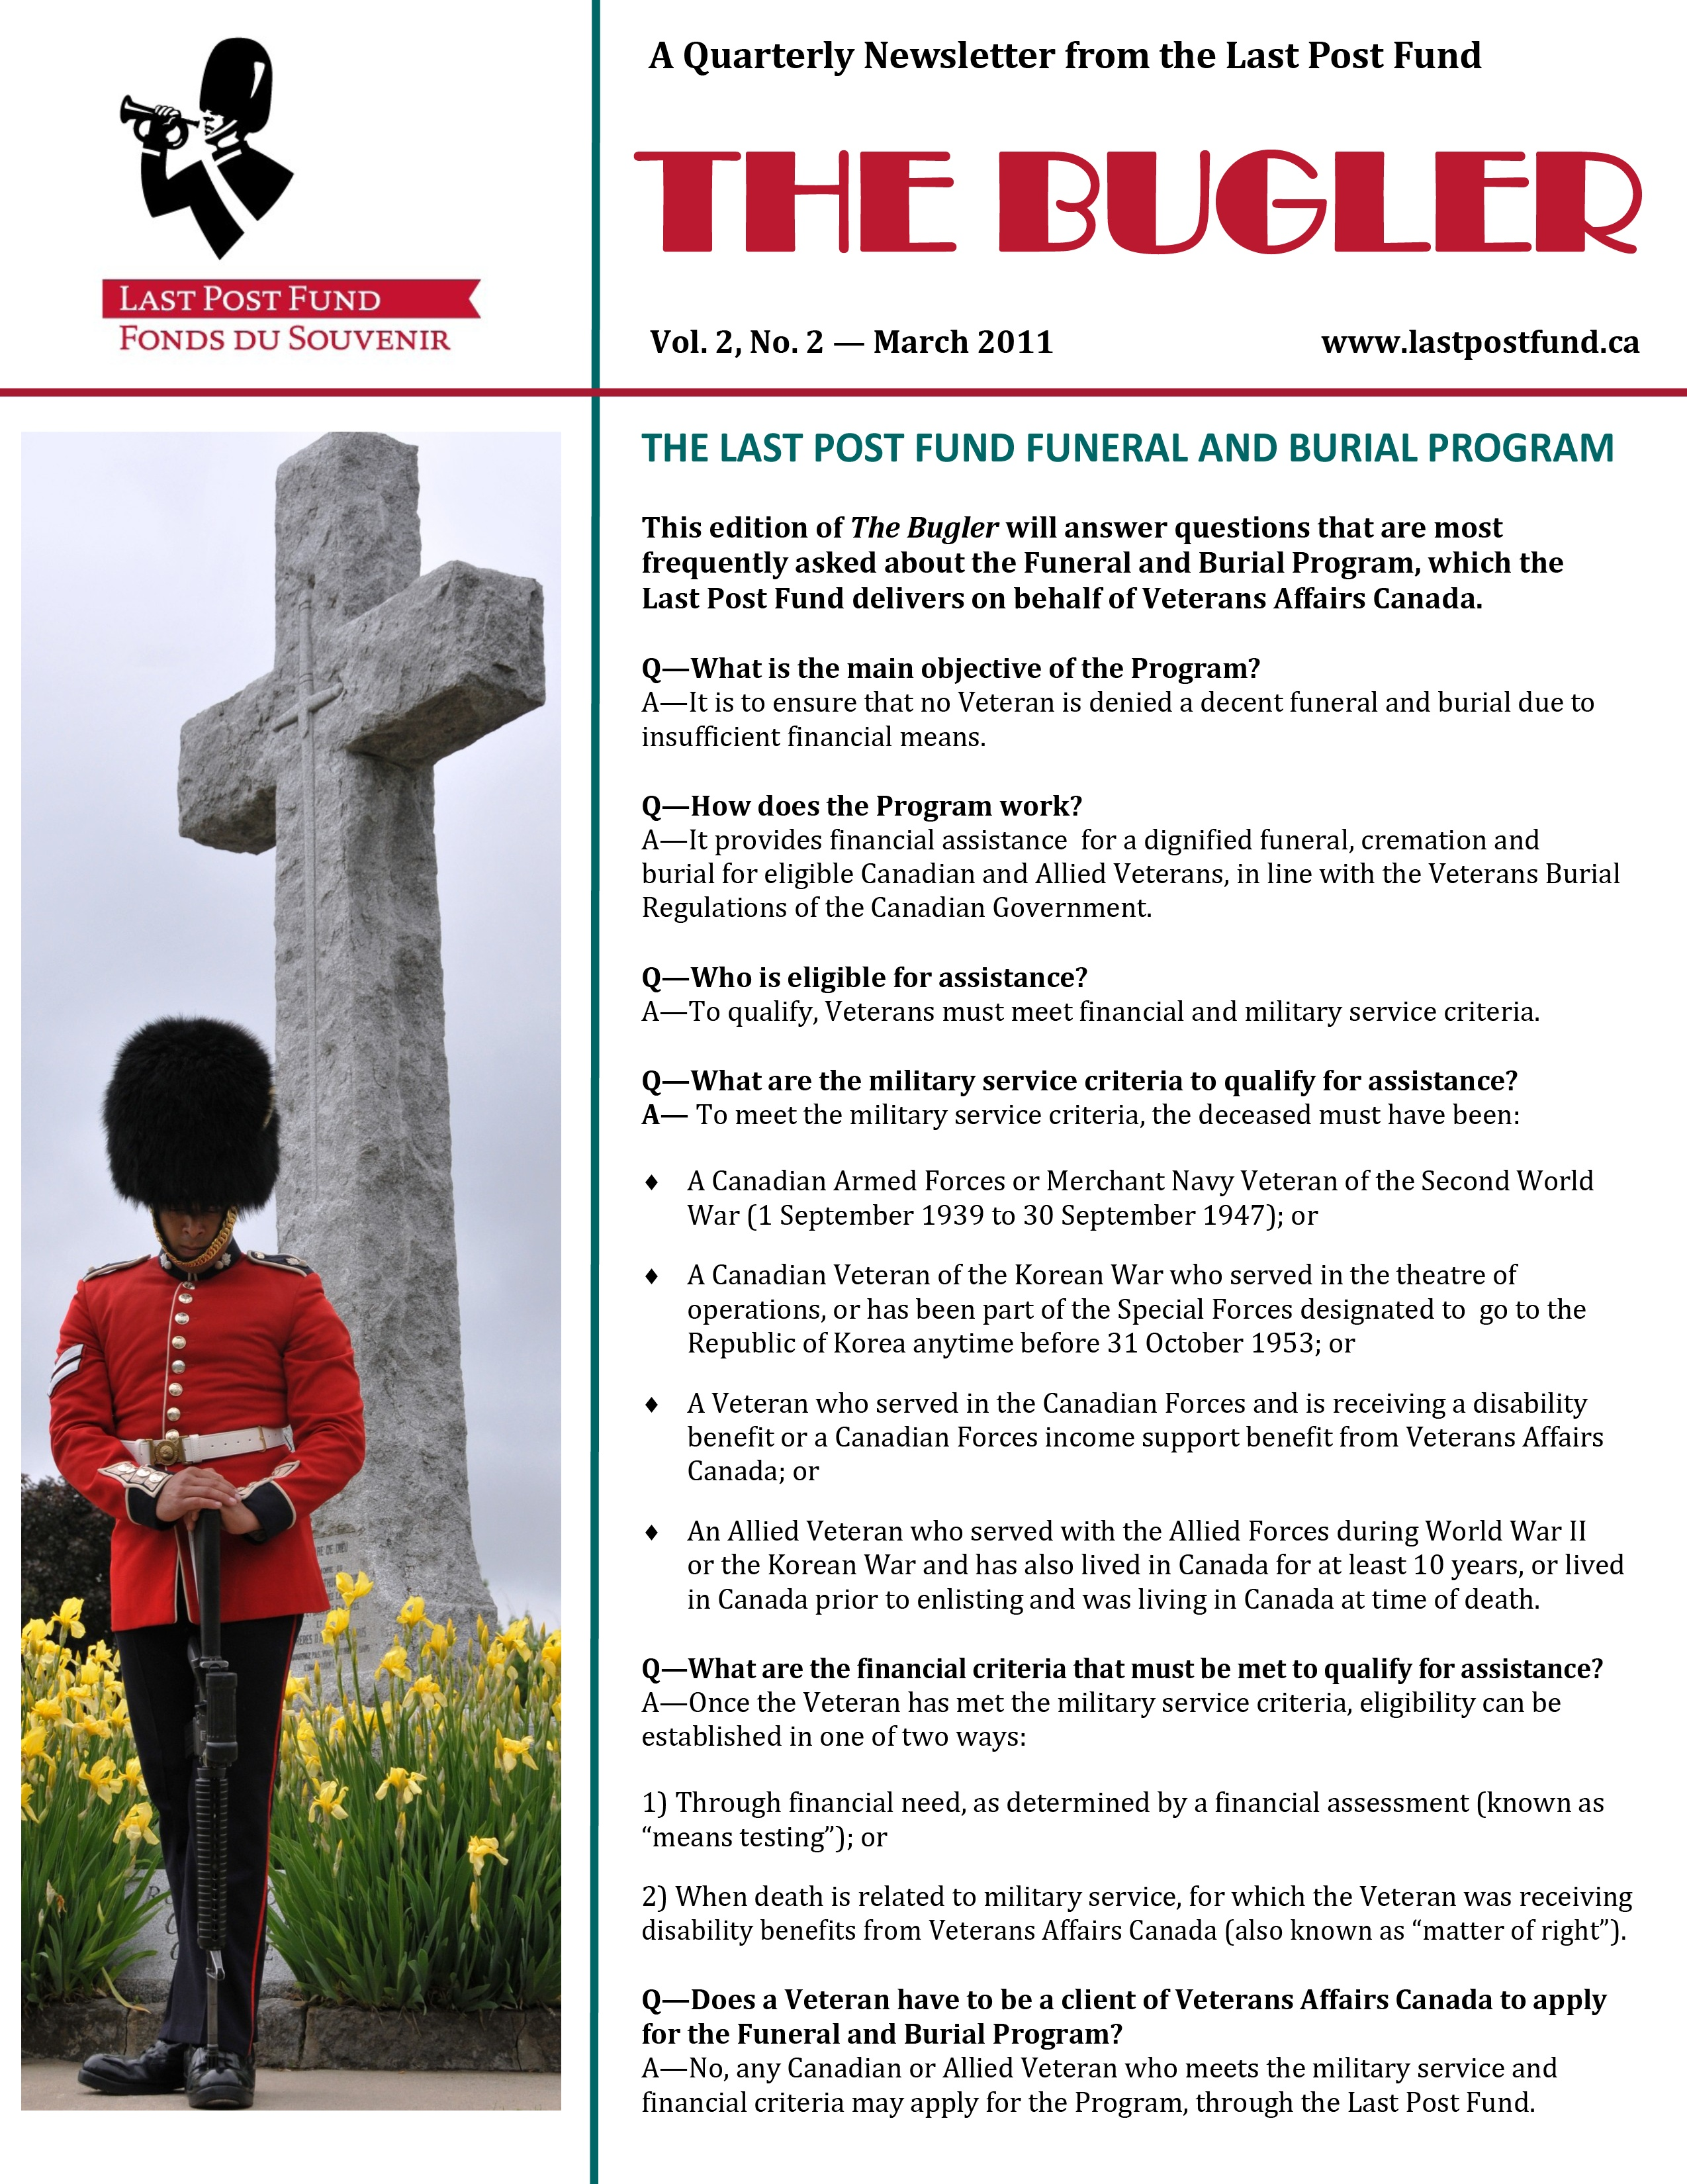 Canadian And Allied Veteran Funeral And Burial Program Funeral Pre